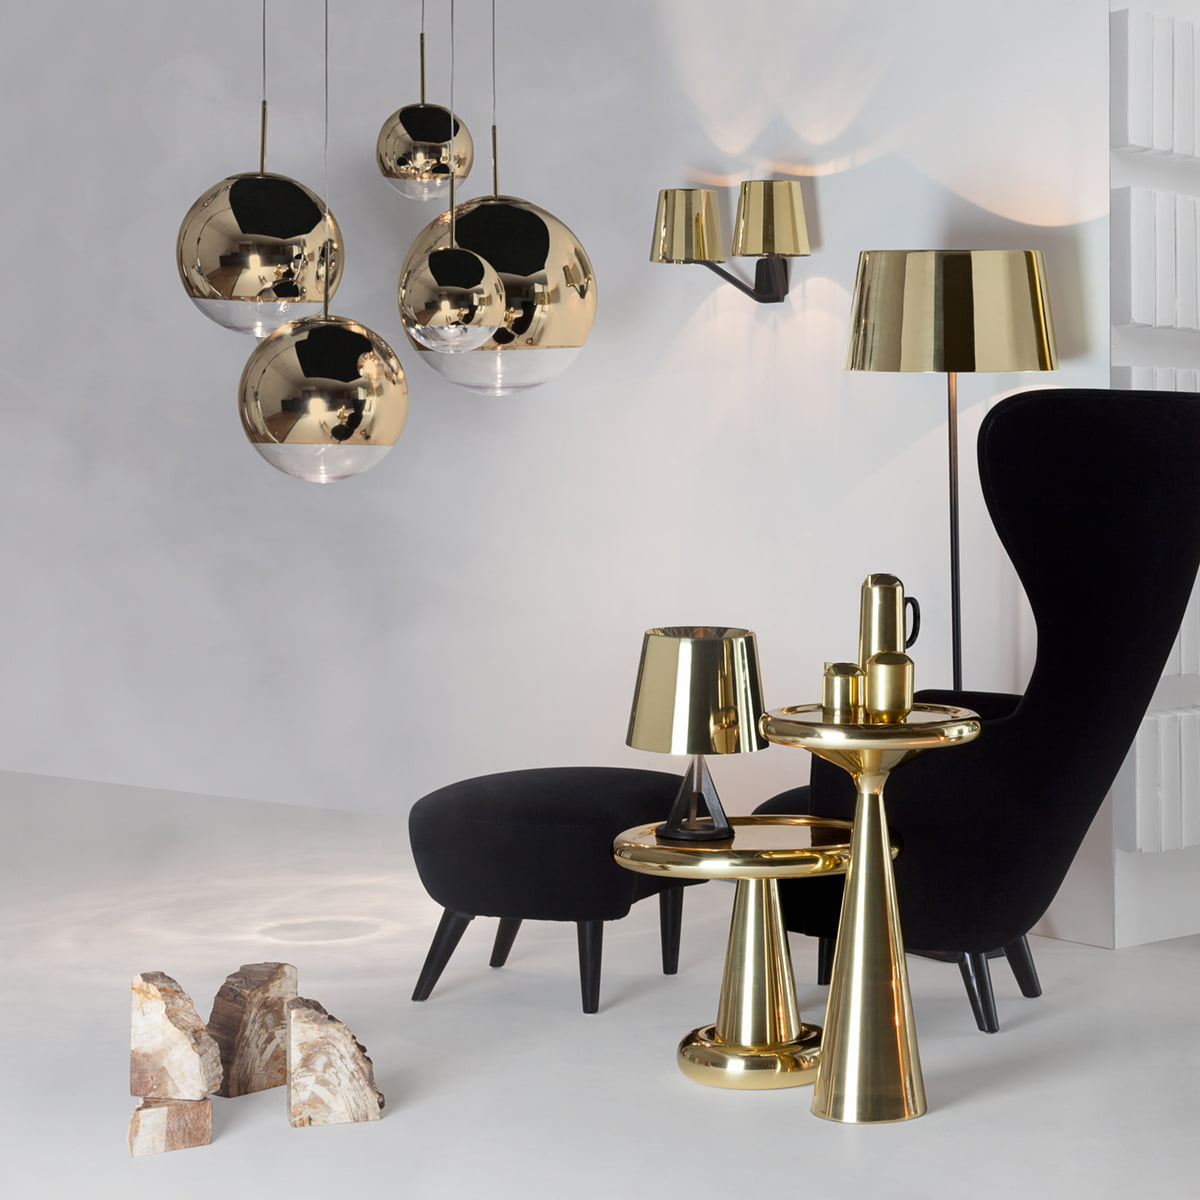 Mirror ball gold pendant light by tom dixon tom dixon mirror ball gold pendant lamp aloadofball Choice Image